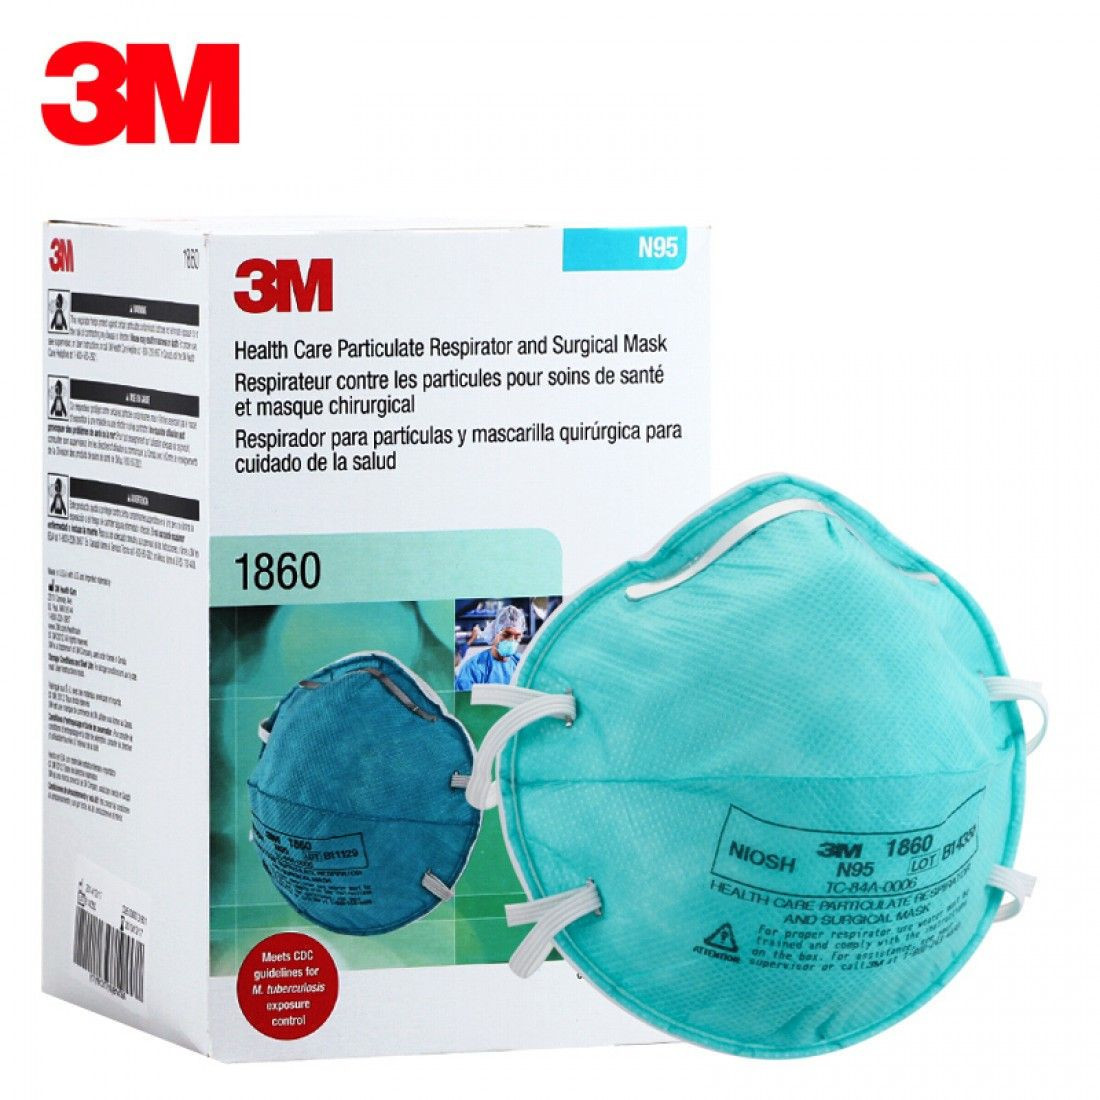 3M N95 Mask and KN95 Mask